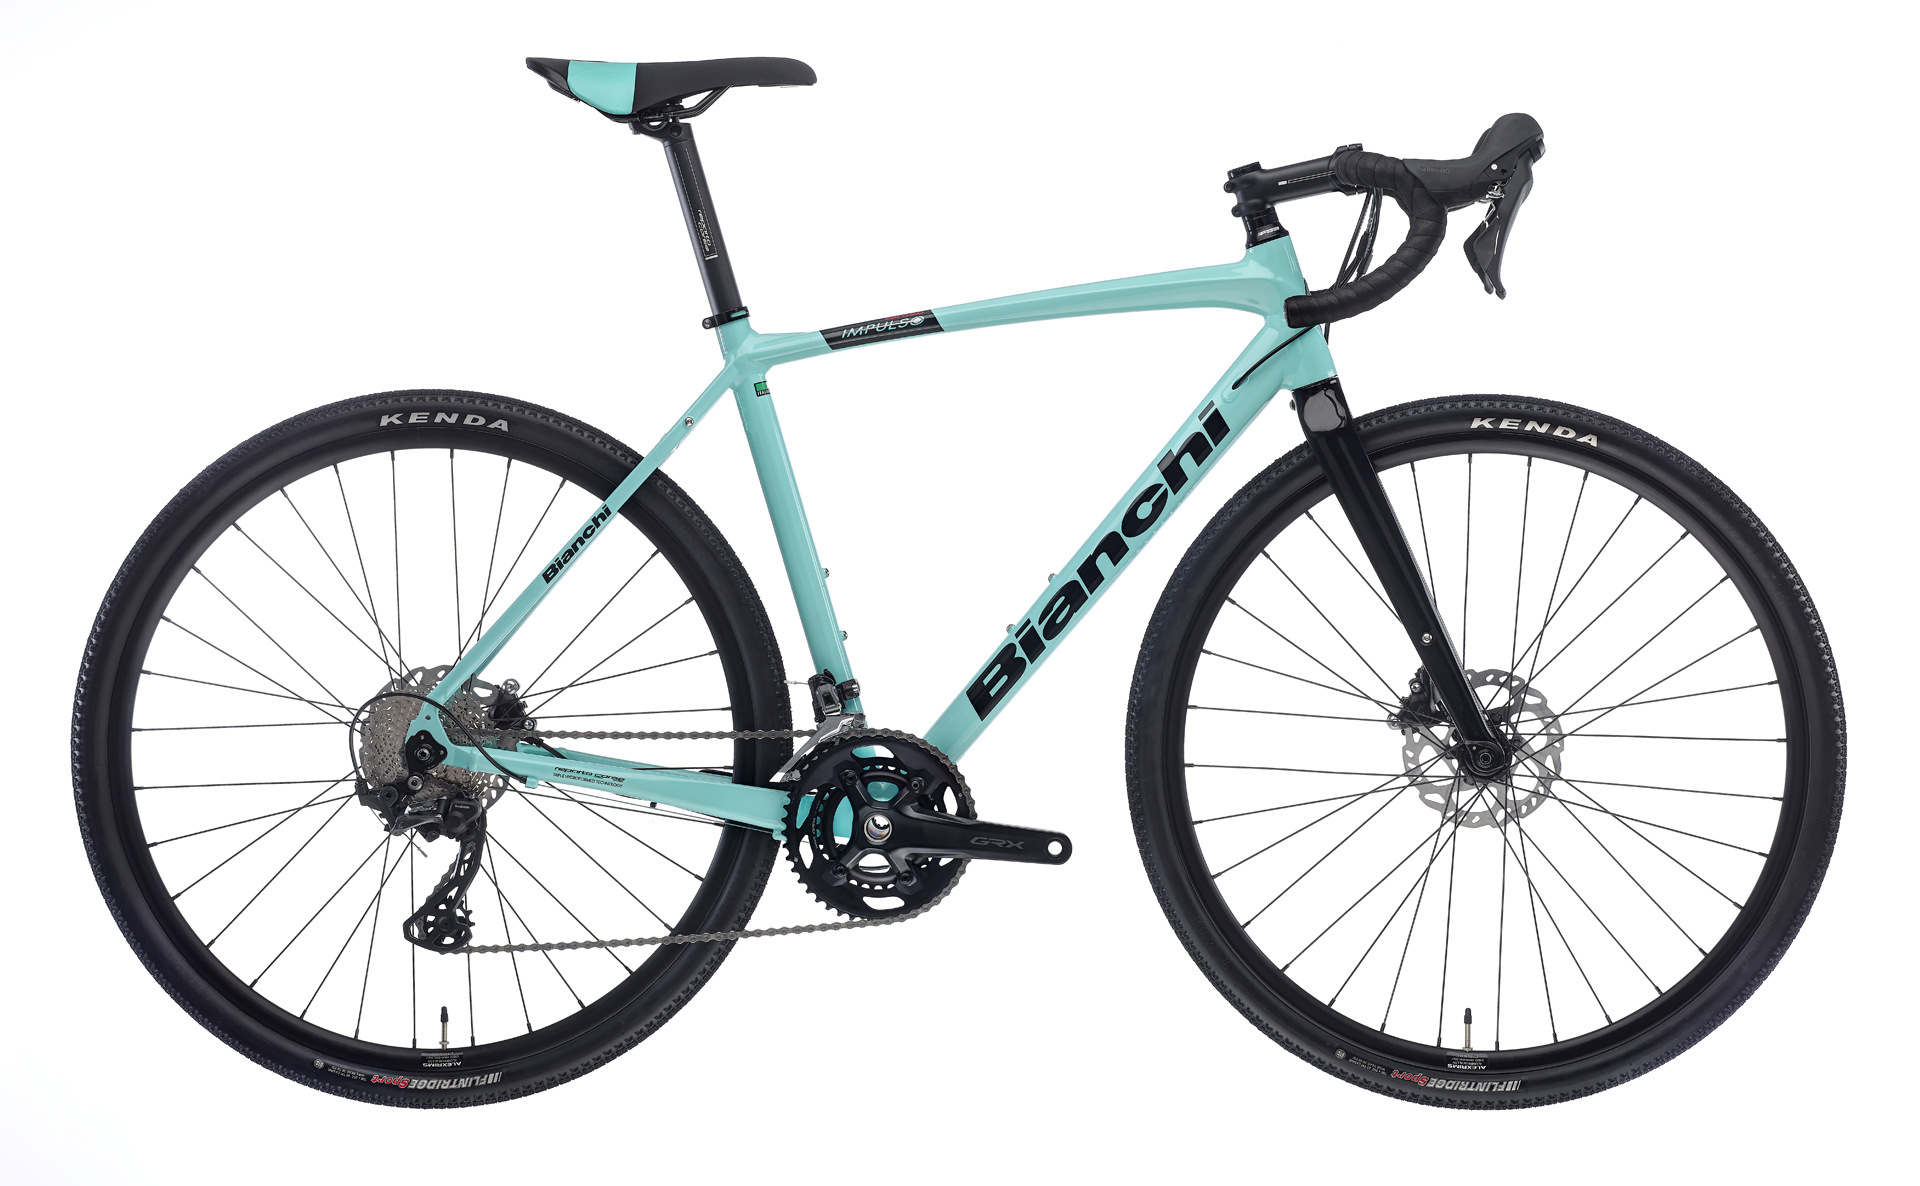 Bianchi IMPULSO ALLROAD GRX 600 11SP HYDR. DISC Celeste